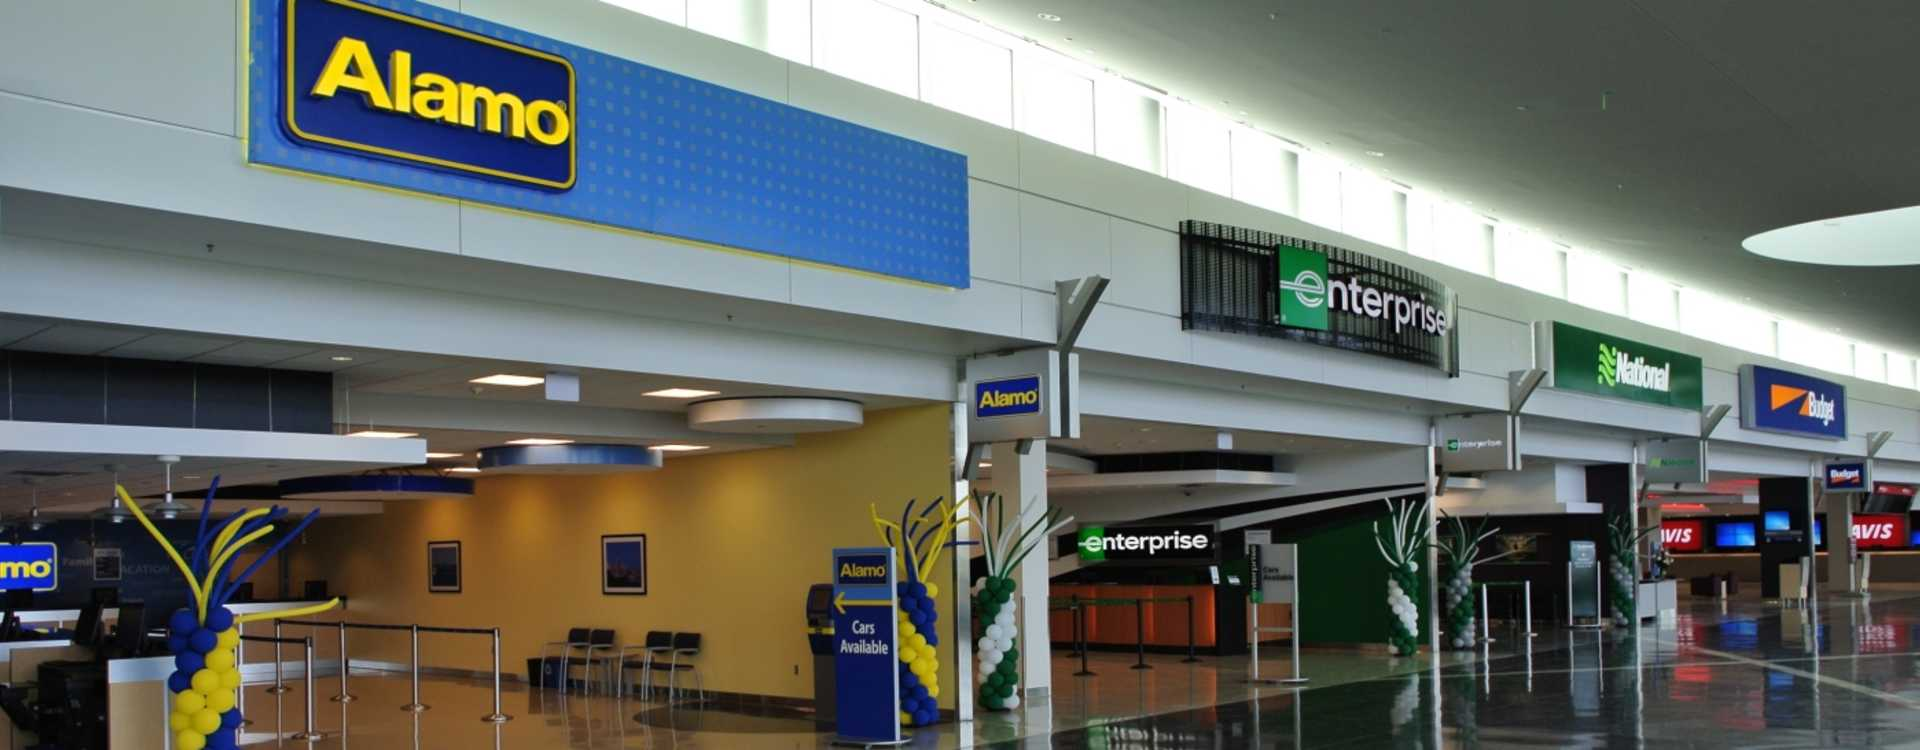 Sea-Tac_Rental_Car_Facility-6.jpg